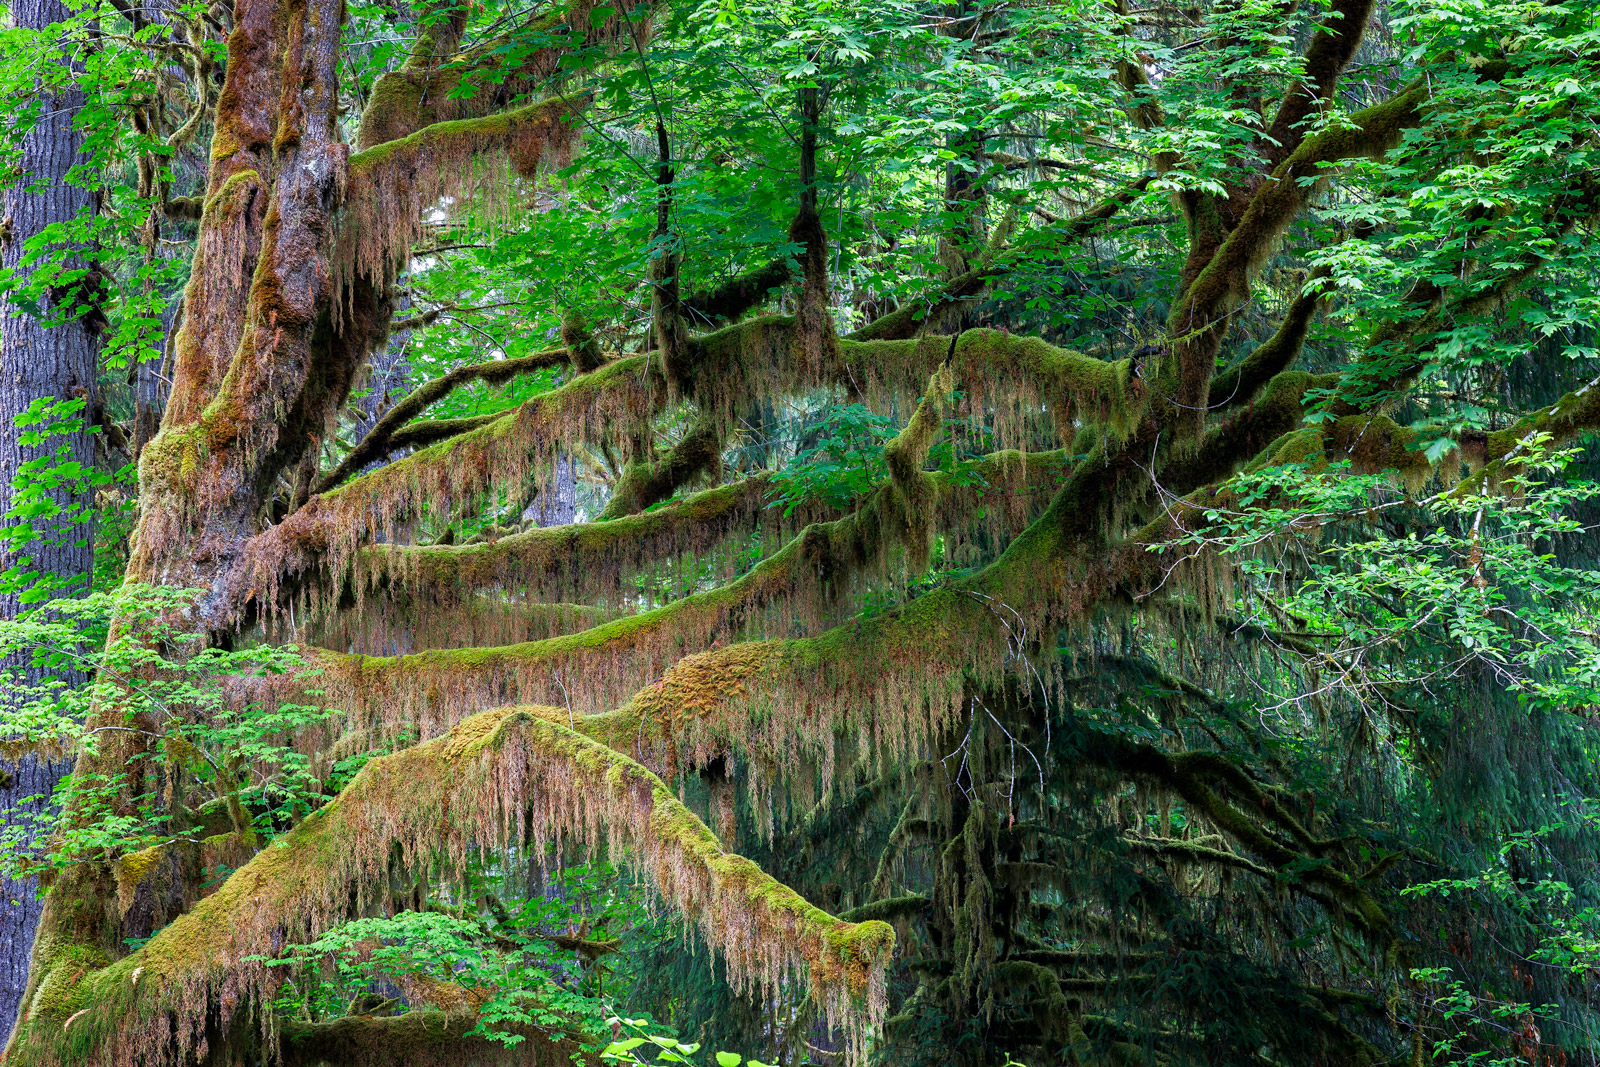 A Limited Edition, Fine Art photograph of the Hoh Rain Forest with moss hanging like draperies from a large tree limb in Olympic...